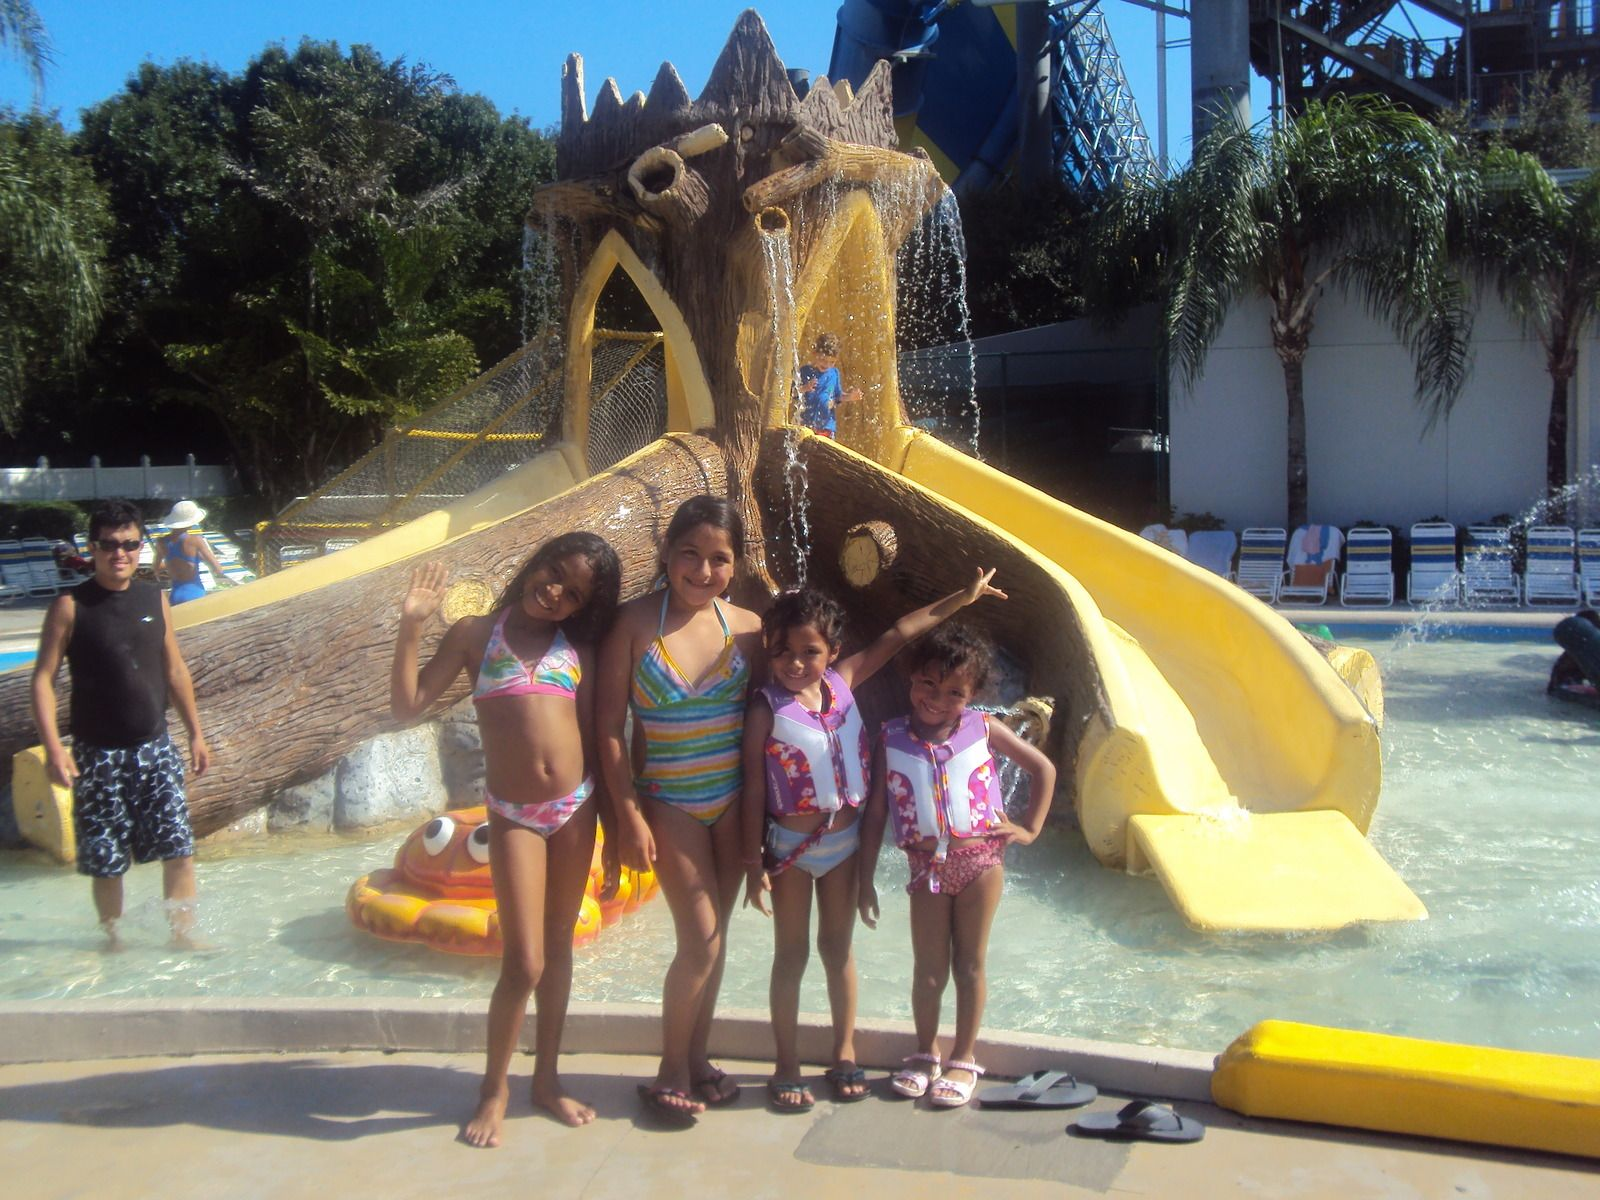 Tadpool At Rapids Water Park In West Palm Beach Fl Image Submitted To Facebook Photo Contest